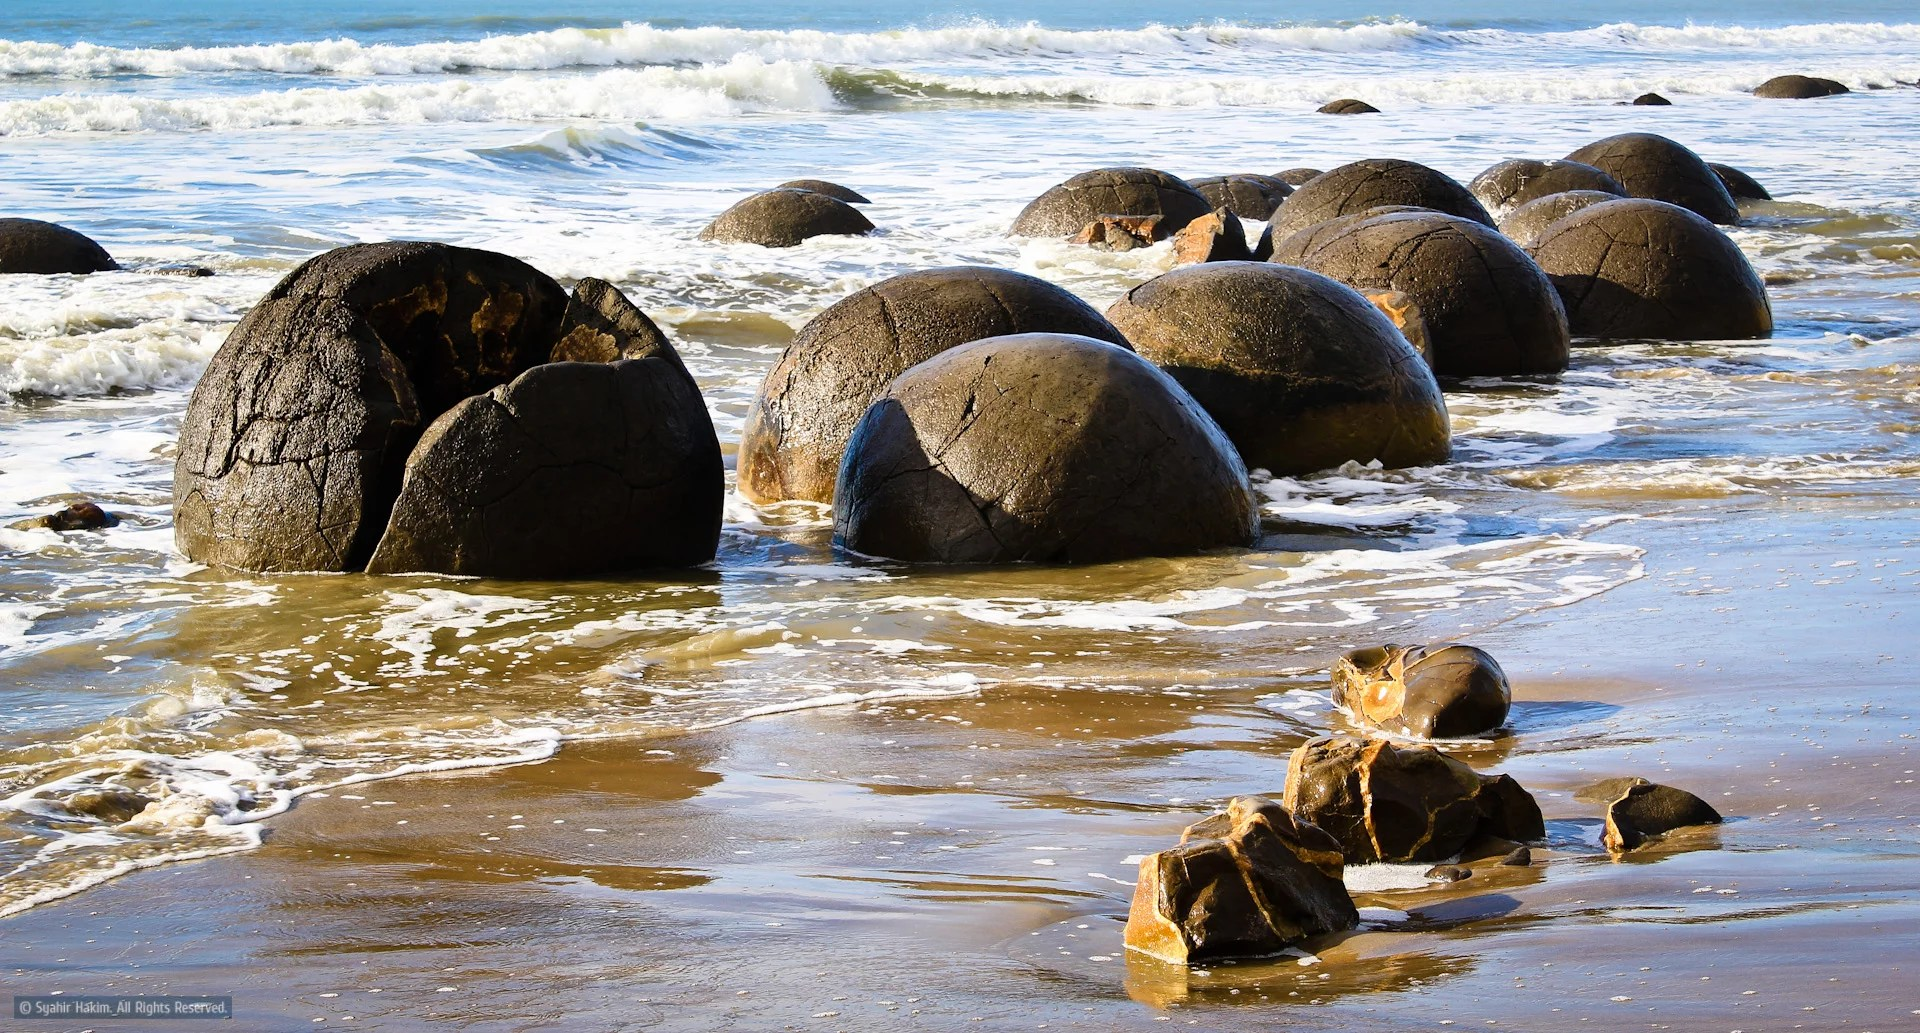 Most-Mythical-Places-in-the-World-Moeraki-Boulders